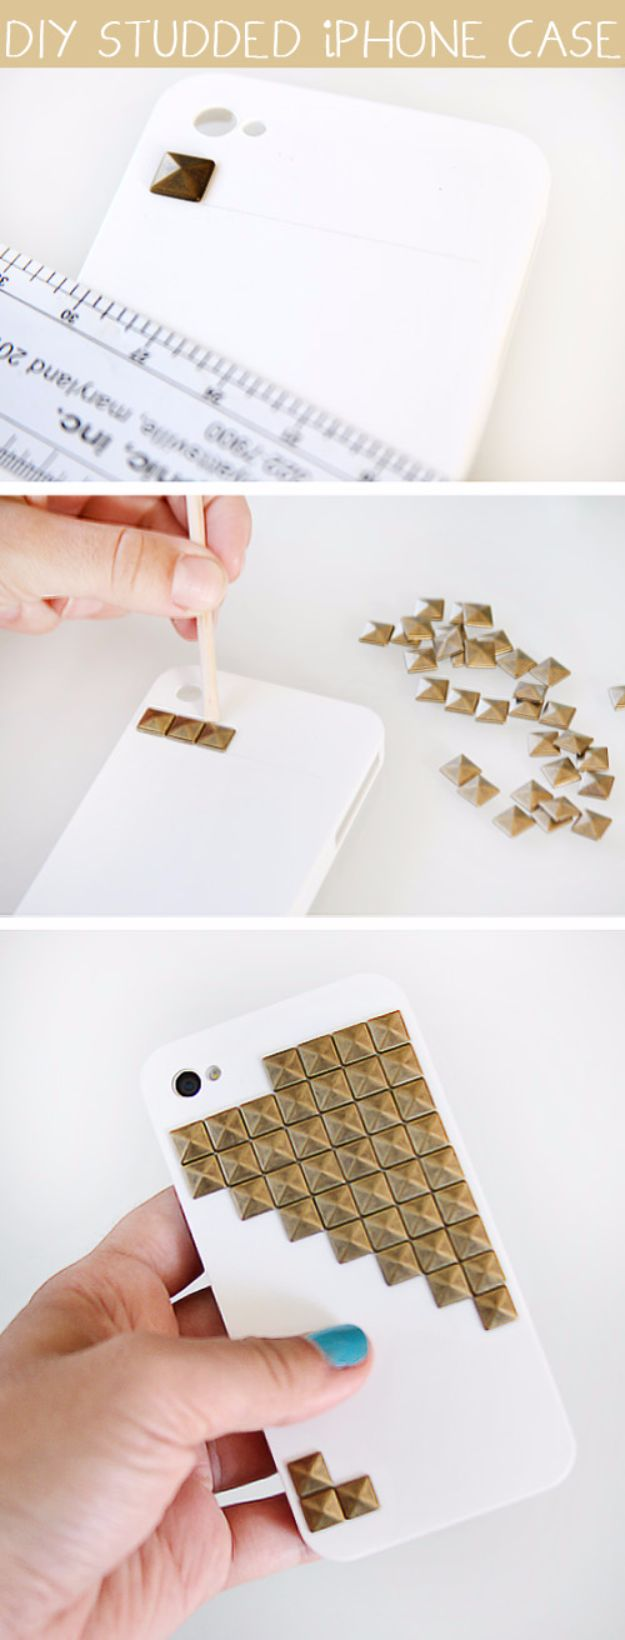 Crafts for Teens to Make and Sell - DIY Studded Iphone Case - Cheap and Easy DIY Ideas To Make For Extra Money - Best Things to Sell On Etsy, Dollar Store Craft Ideas, Quick Projects for Teenagers To Make Spending Cash - DIY Gifts, Wall Art, School Supplies, Room Decor, Jewelry, Fashion, Hair Accessories, Bracelets, Magnets http://diyprojectsforteens.com/crafts-to-sell-teens